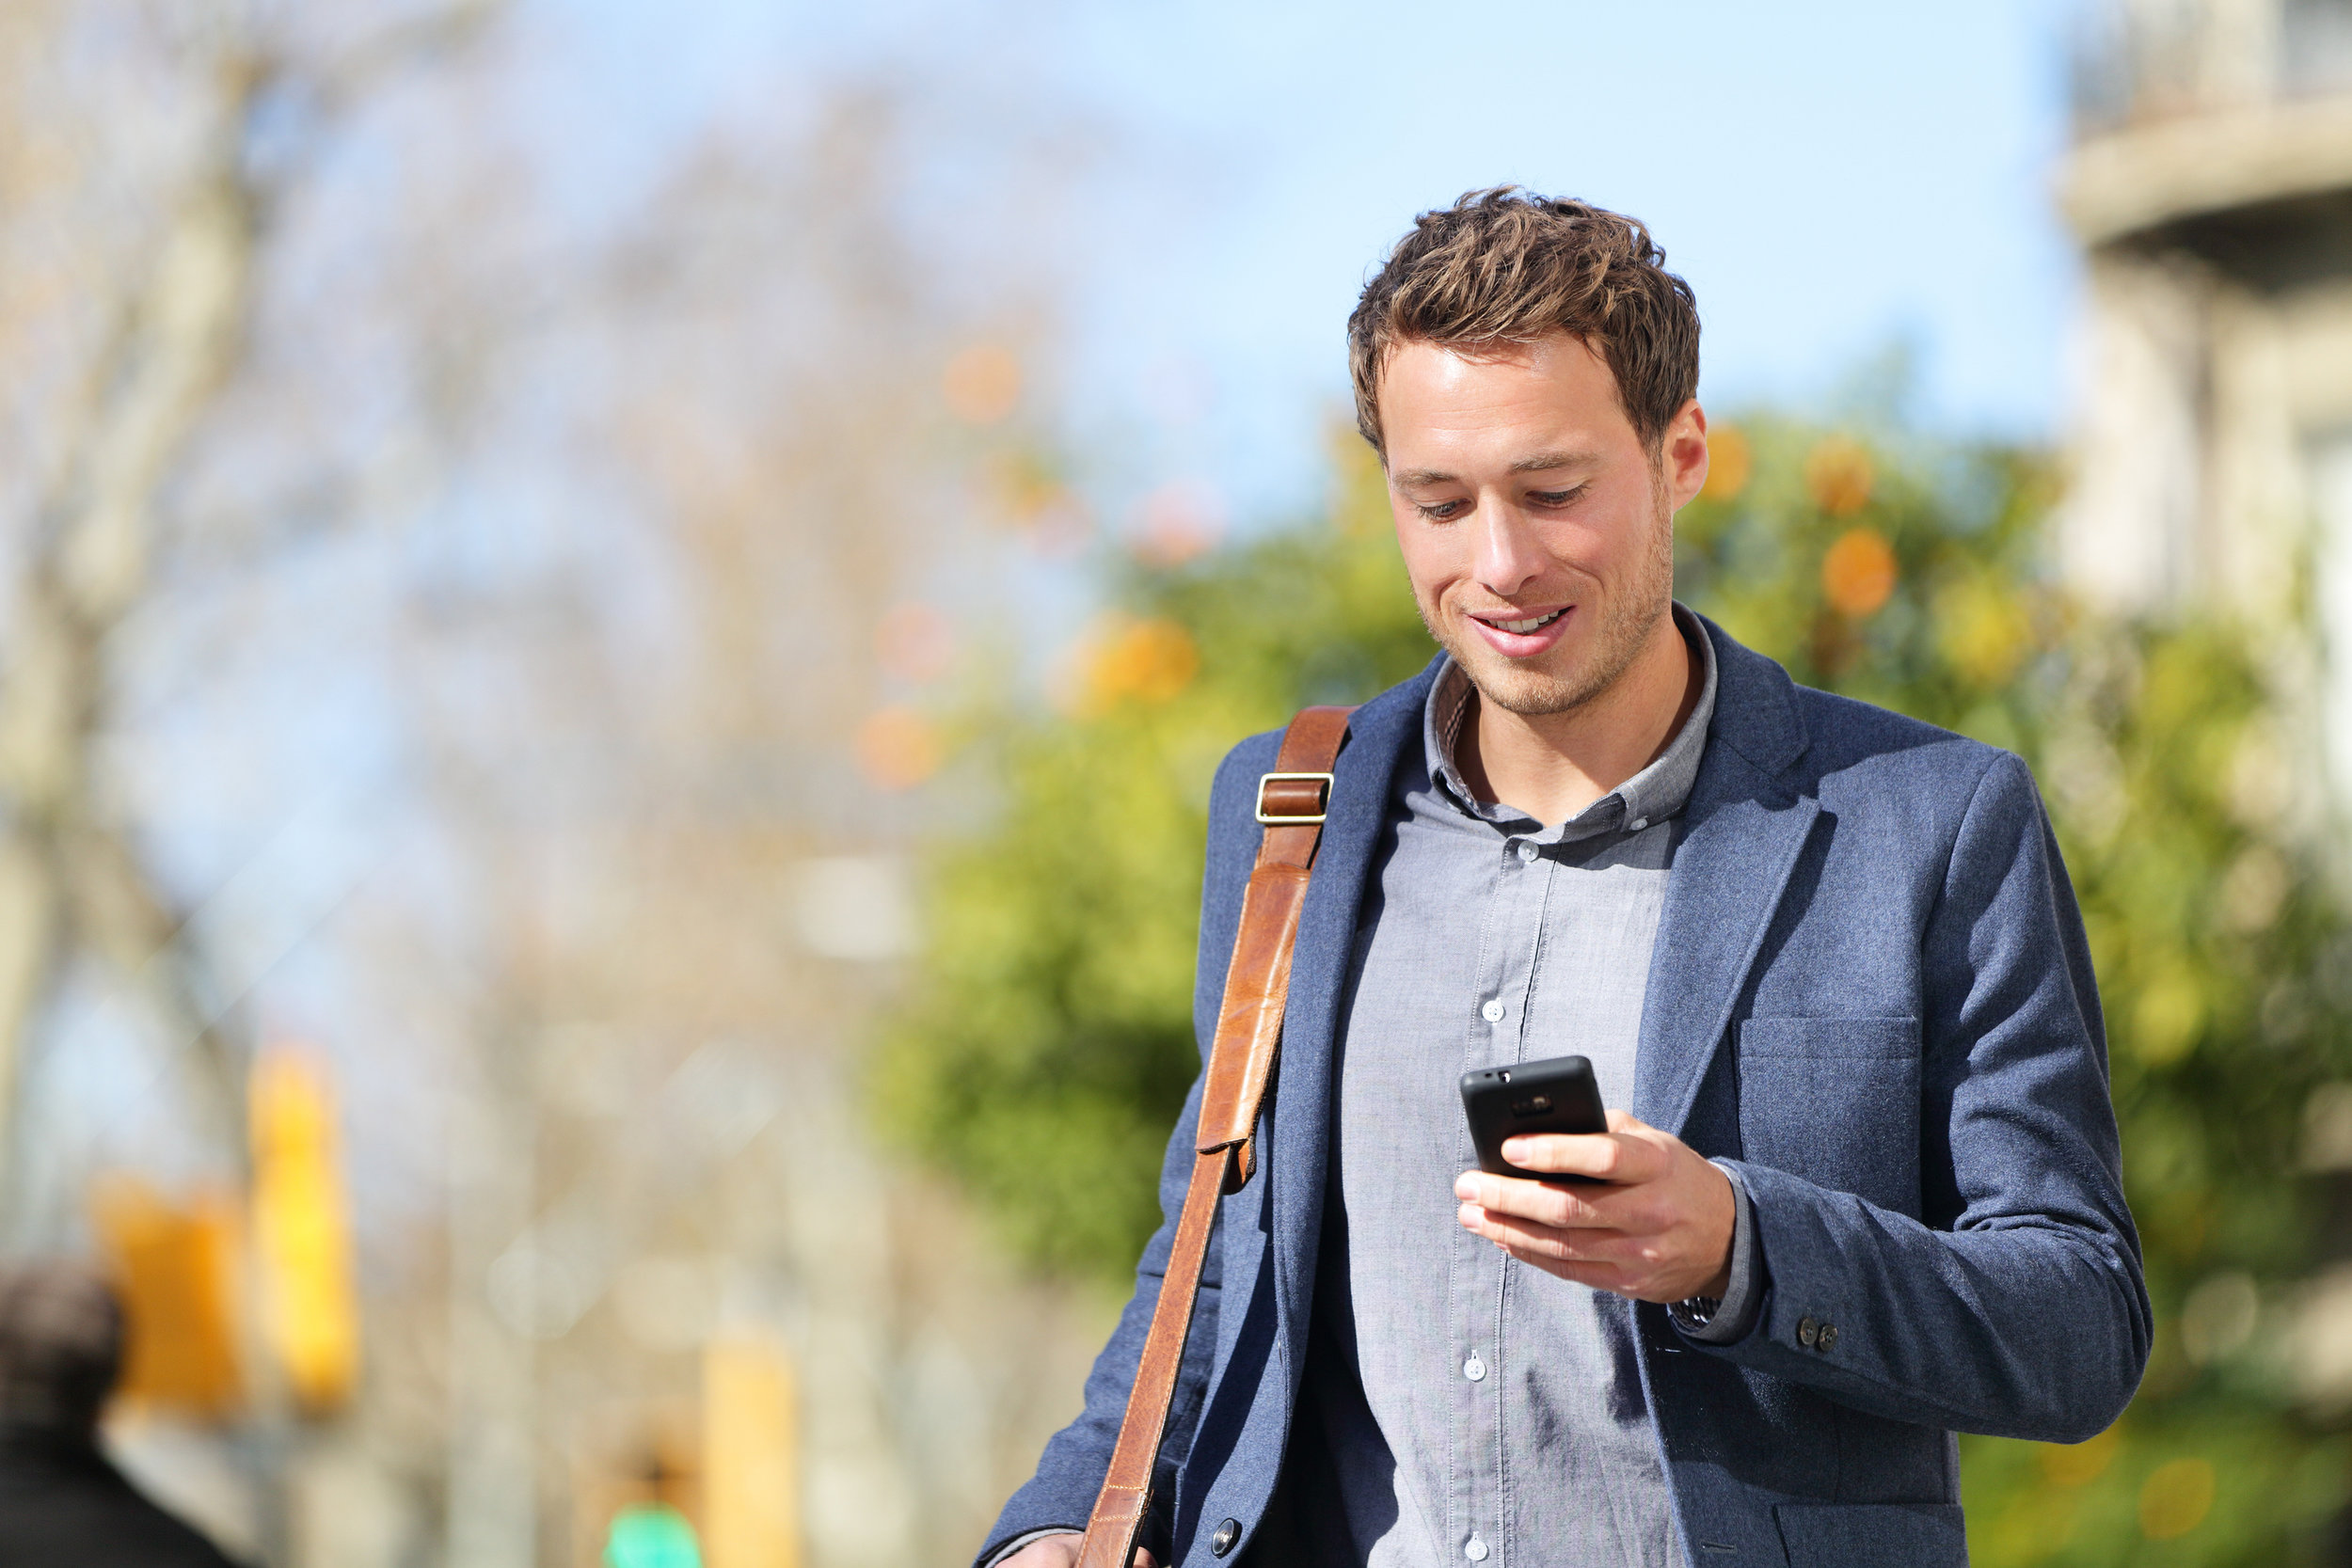 Protect Data on Employee Mobile Devices